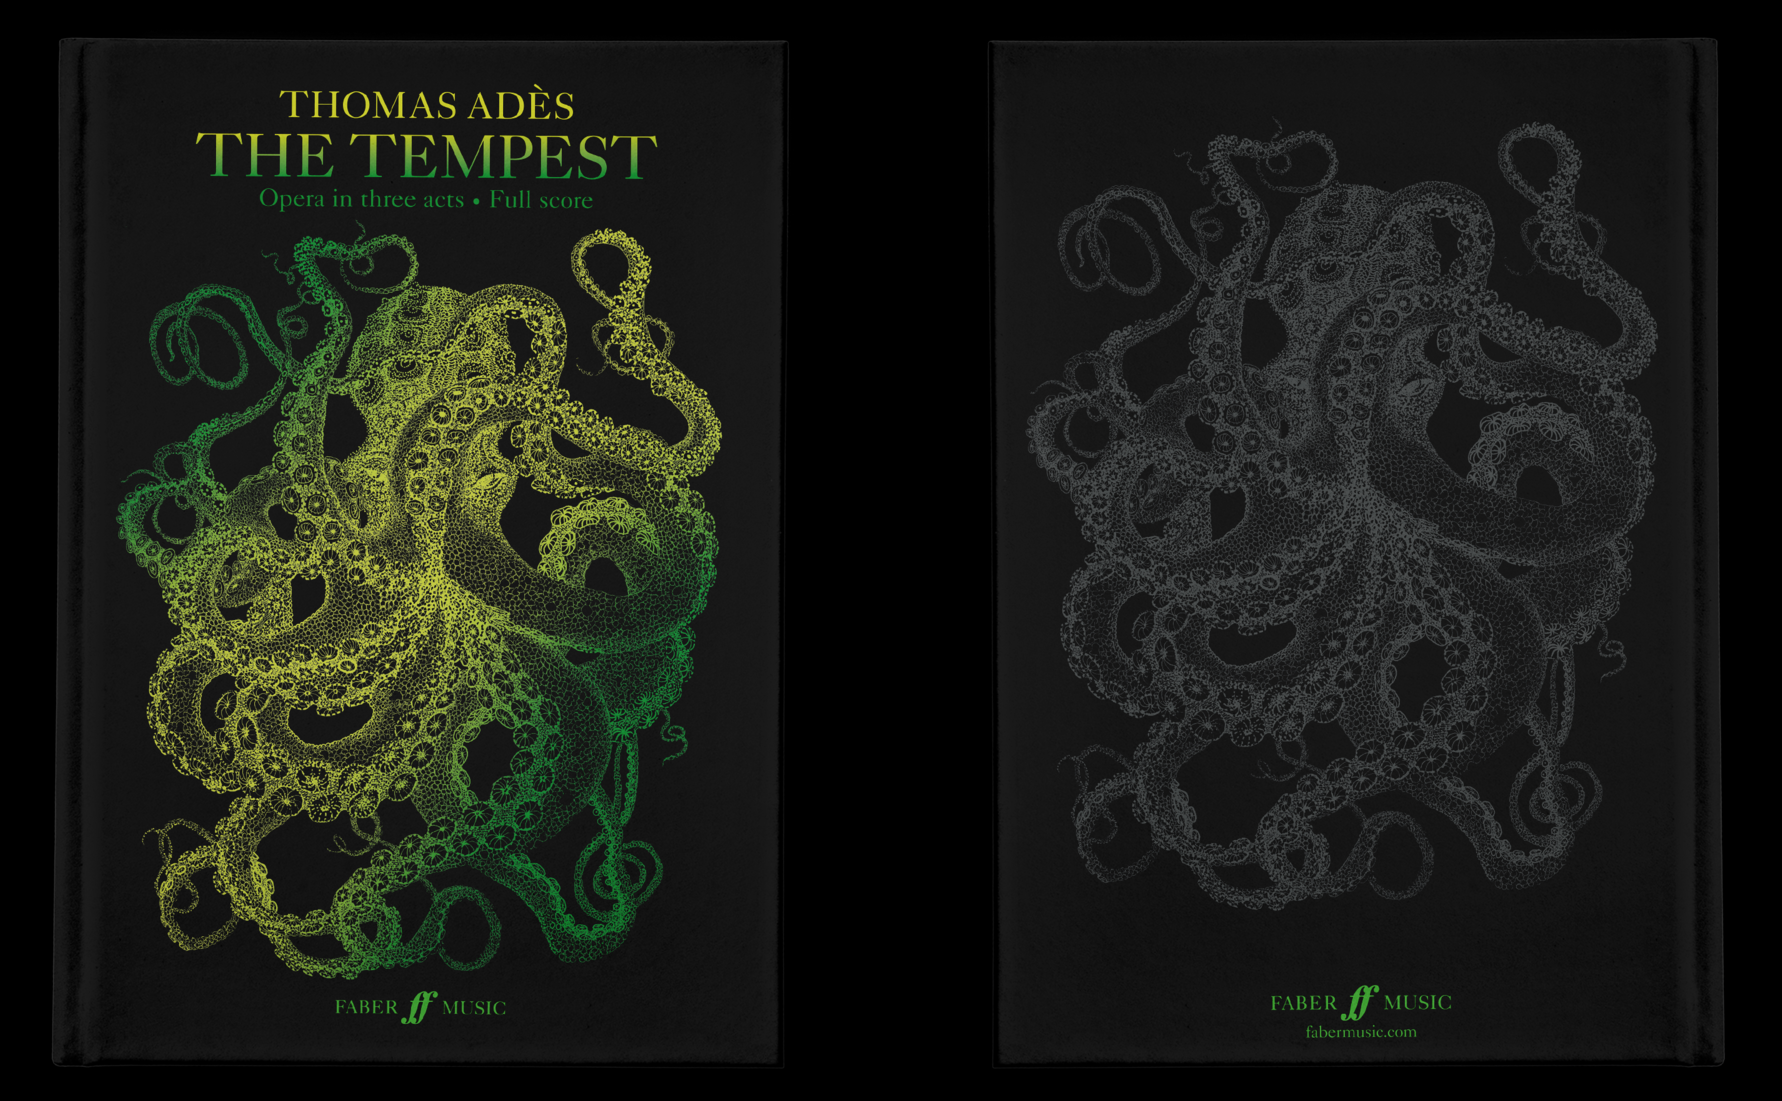 featuring the stunning artwork Octopus and The Firmament by artist Claire Burbridge -